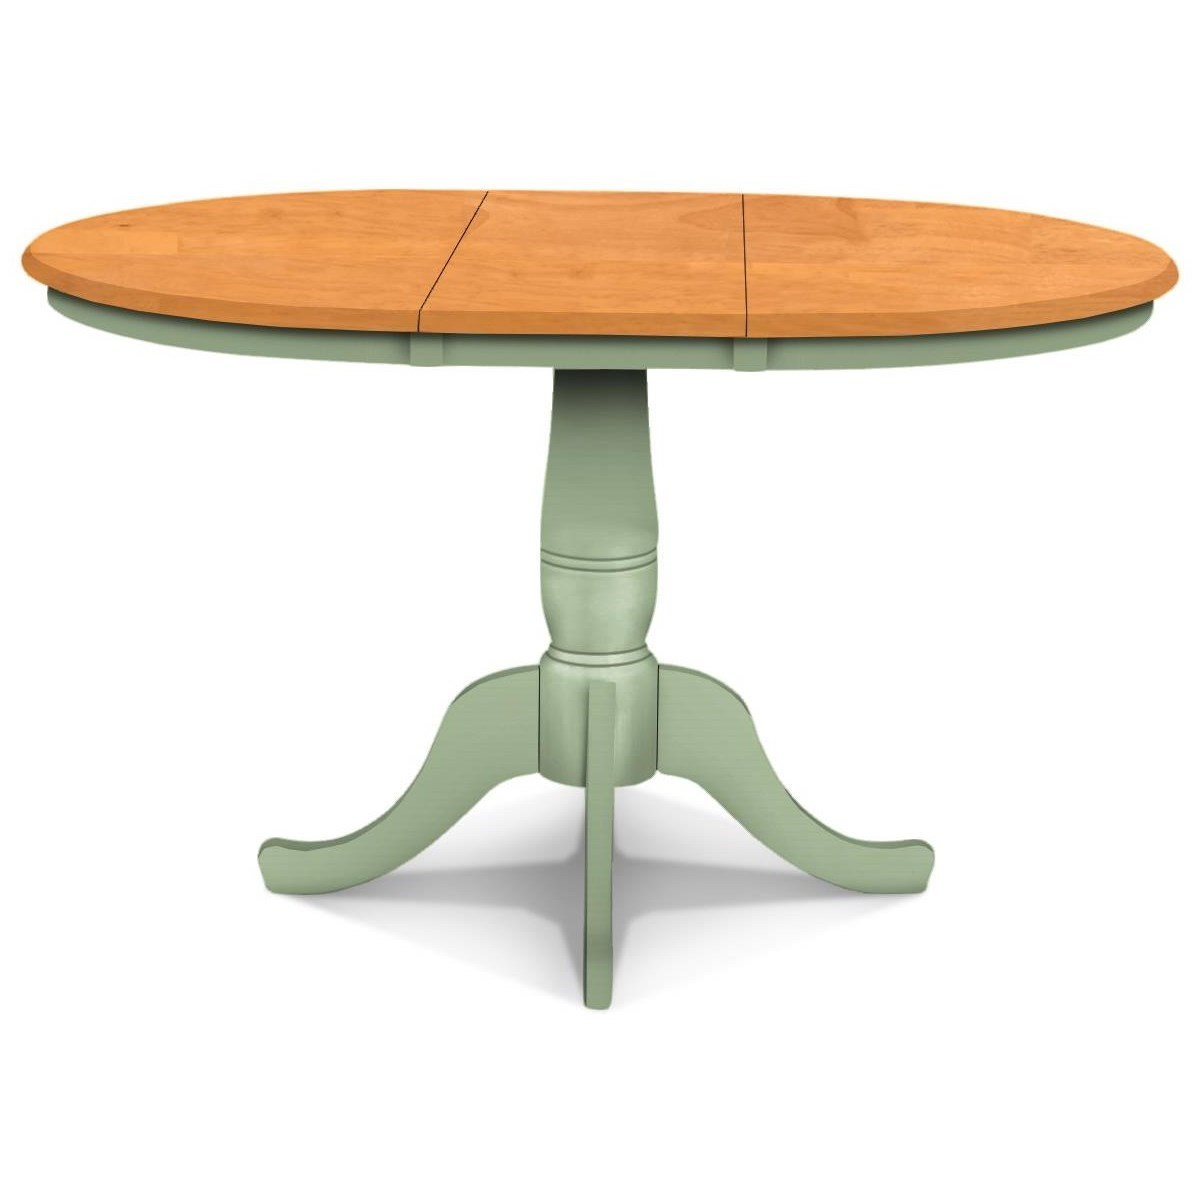 Exceptionnel John Thomas SELECT DiningAdjustable Height Round Pedestal Table